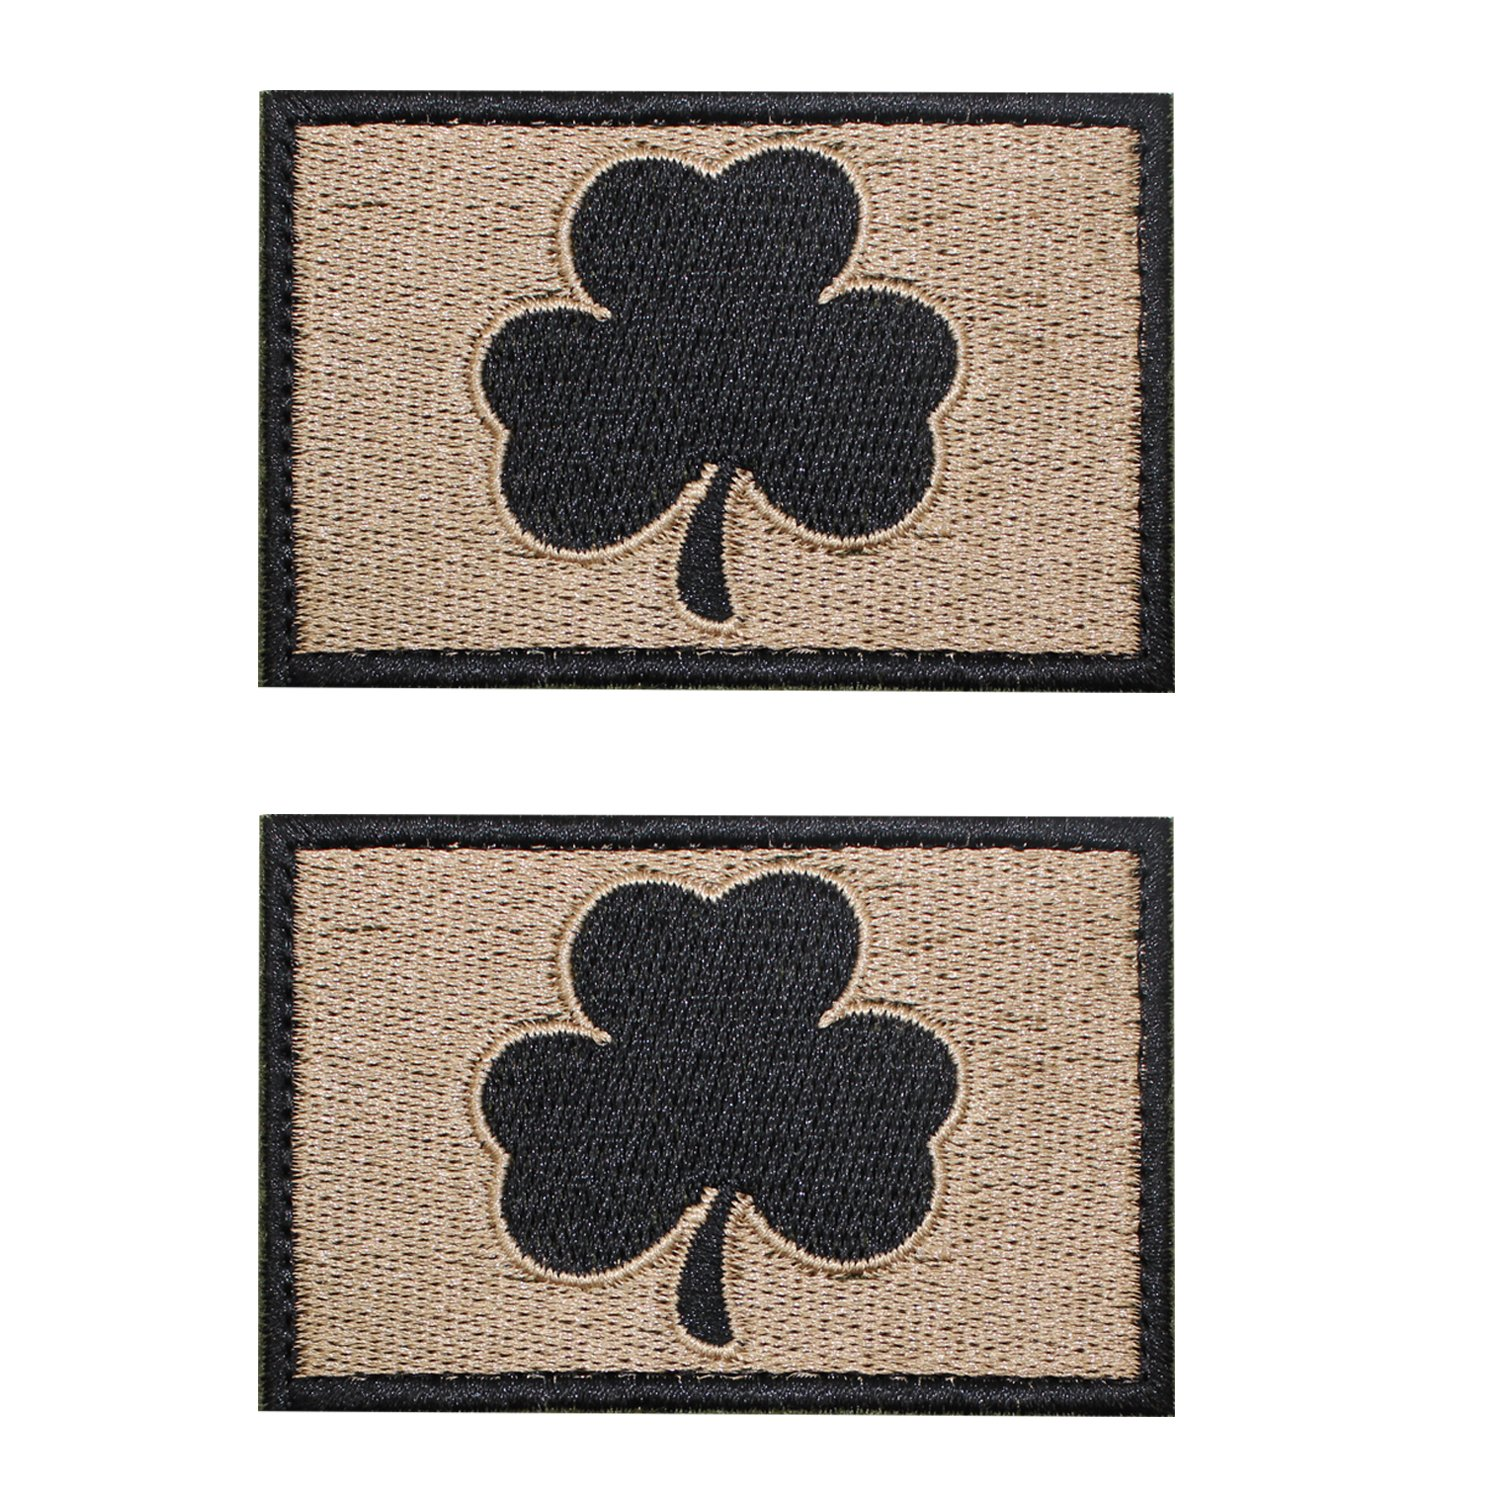 Ejg 2ピースSubdued Irish Clover Tacticalパッチ3 x 2 Militaryパス士気パッチフック&ループの。。。 Subdued Irish Tactical Patch  Mud and black leaves B074MYDCXP